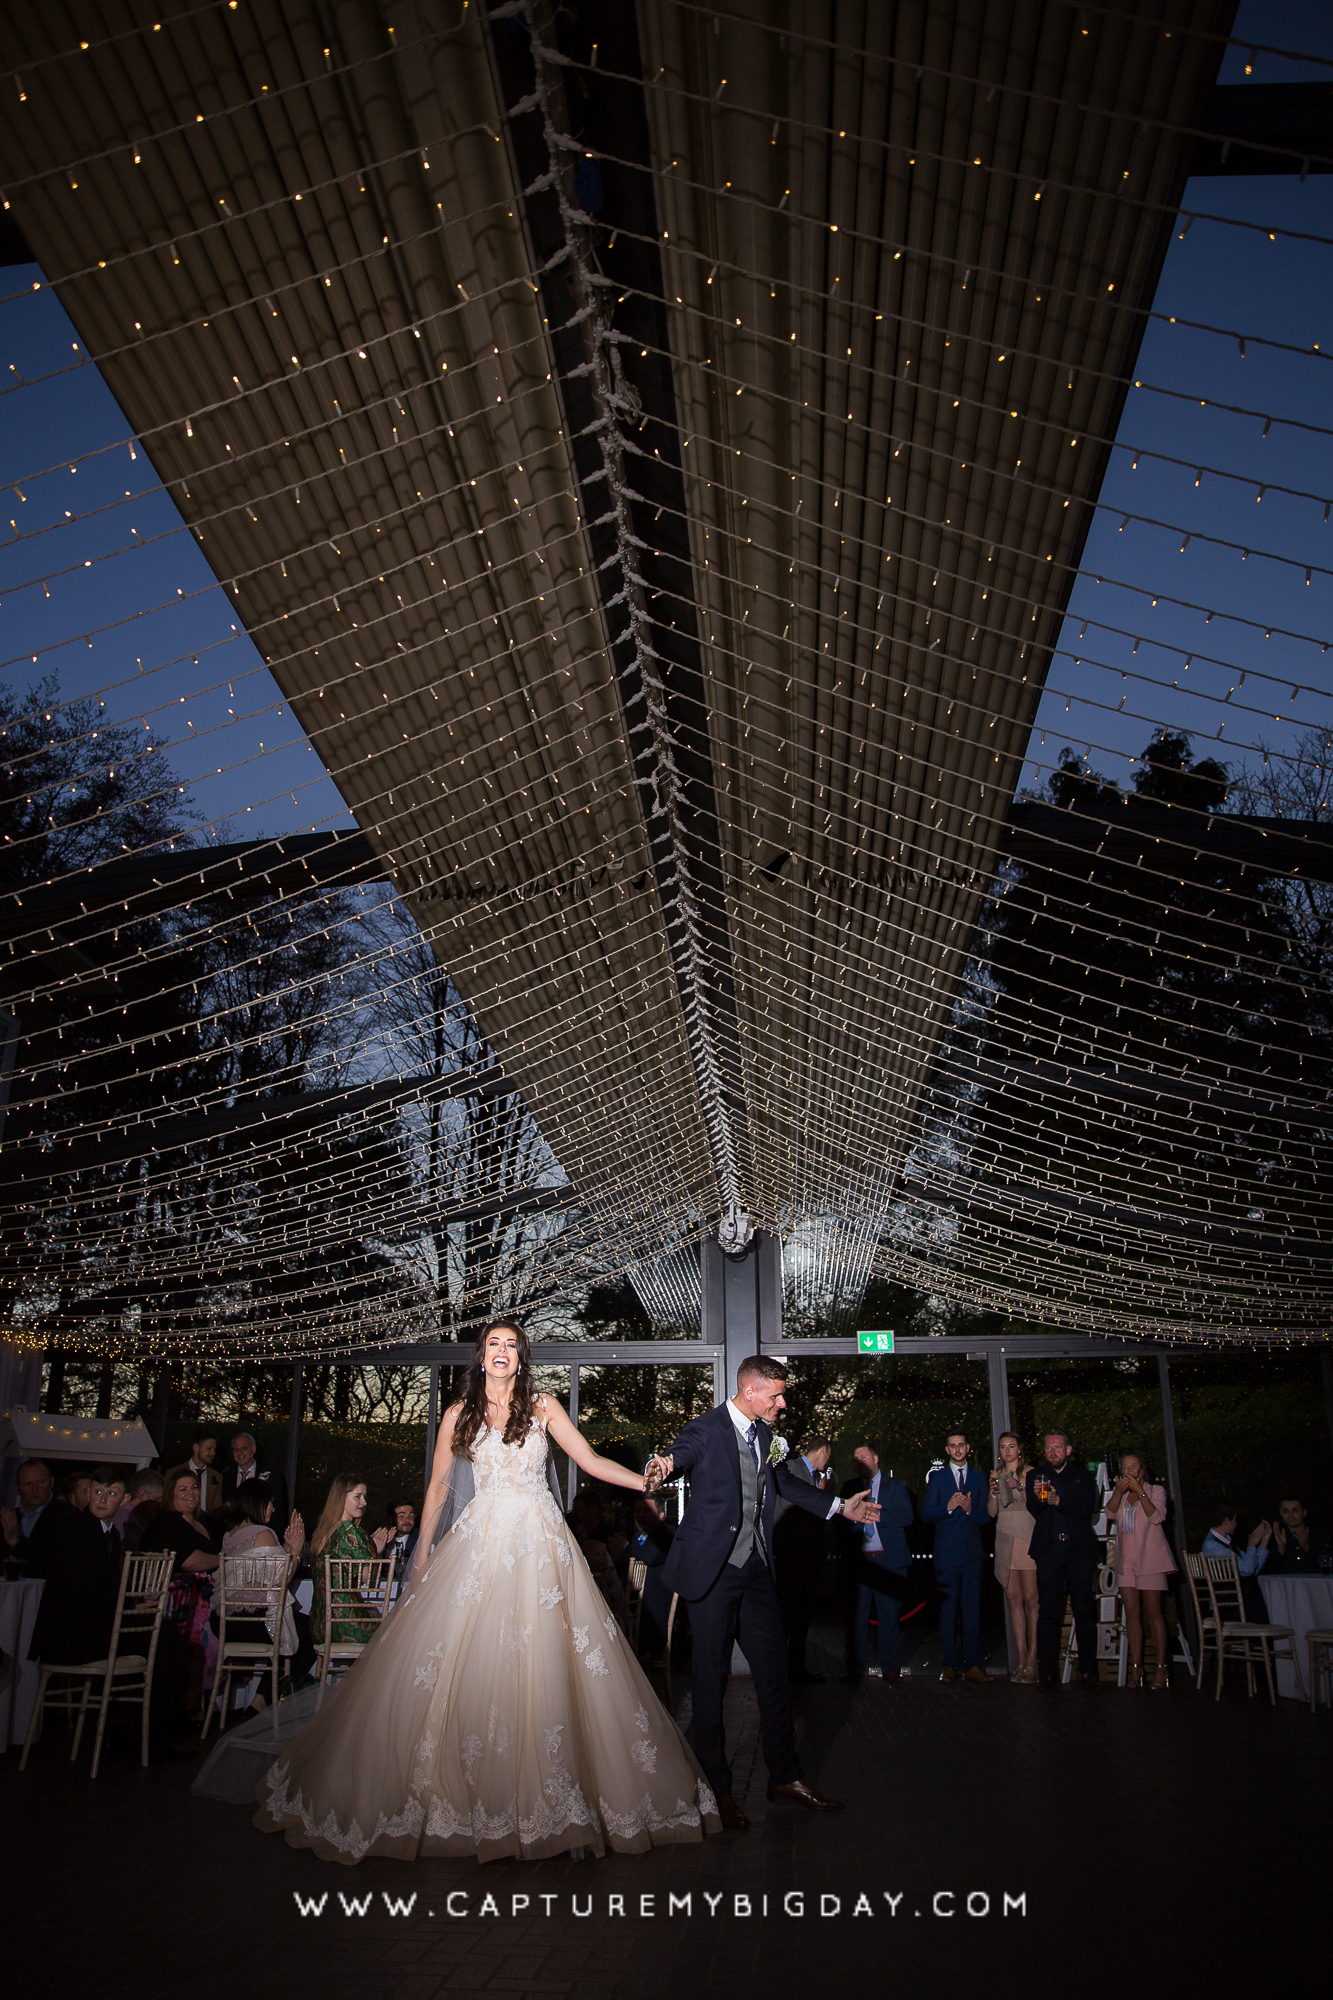 Bride and grooms first dance under fairy lights